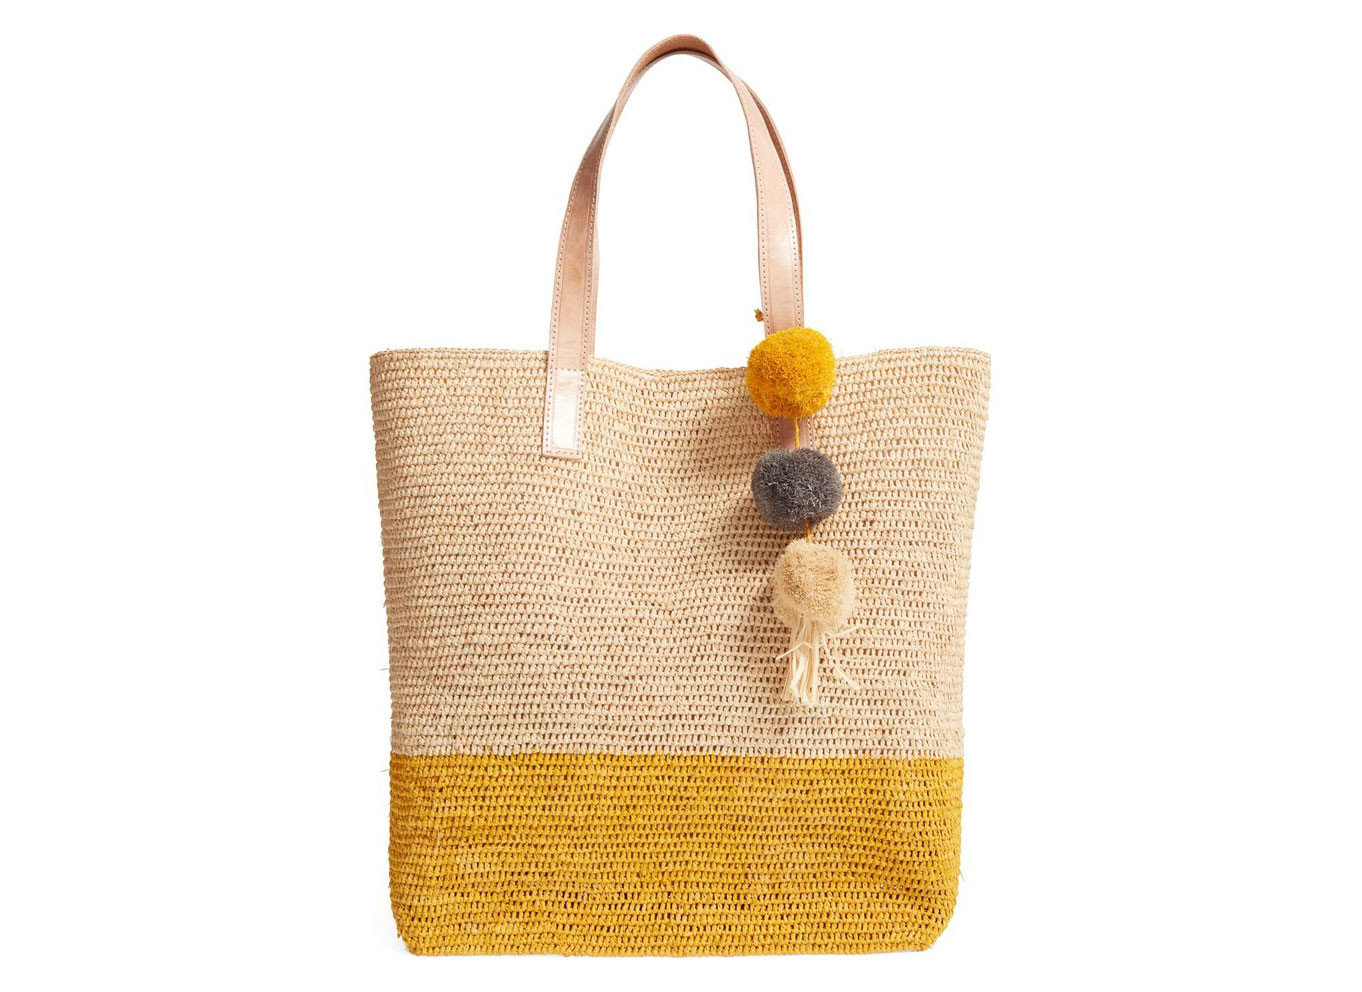 Style + Design accessory handbag bag yellow straw fashion accessory shoulder bag tote bag textile material pattern case